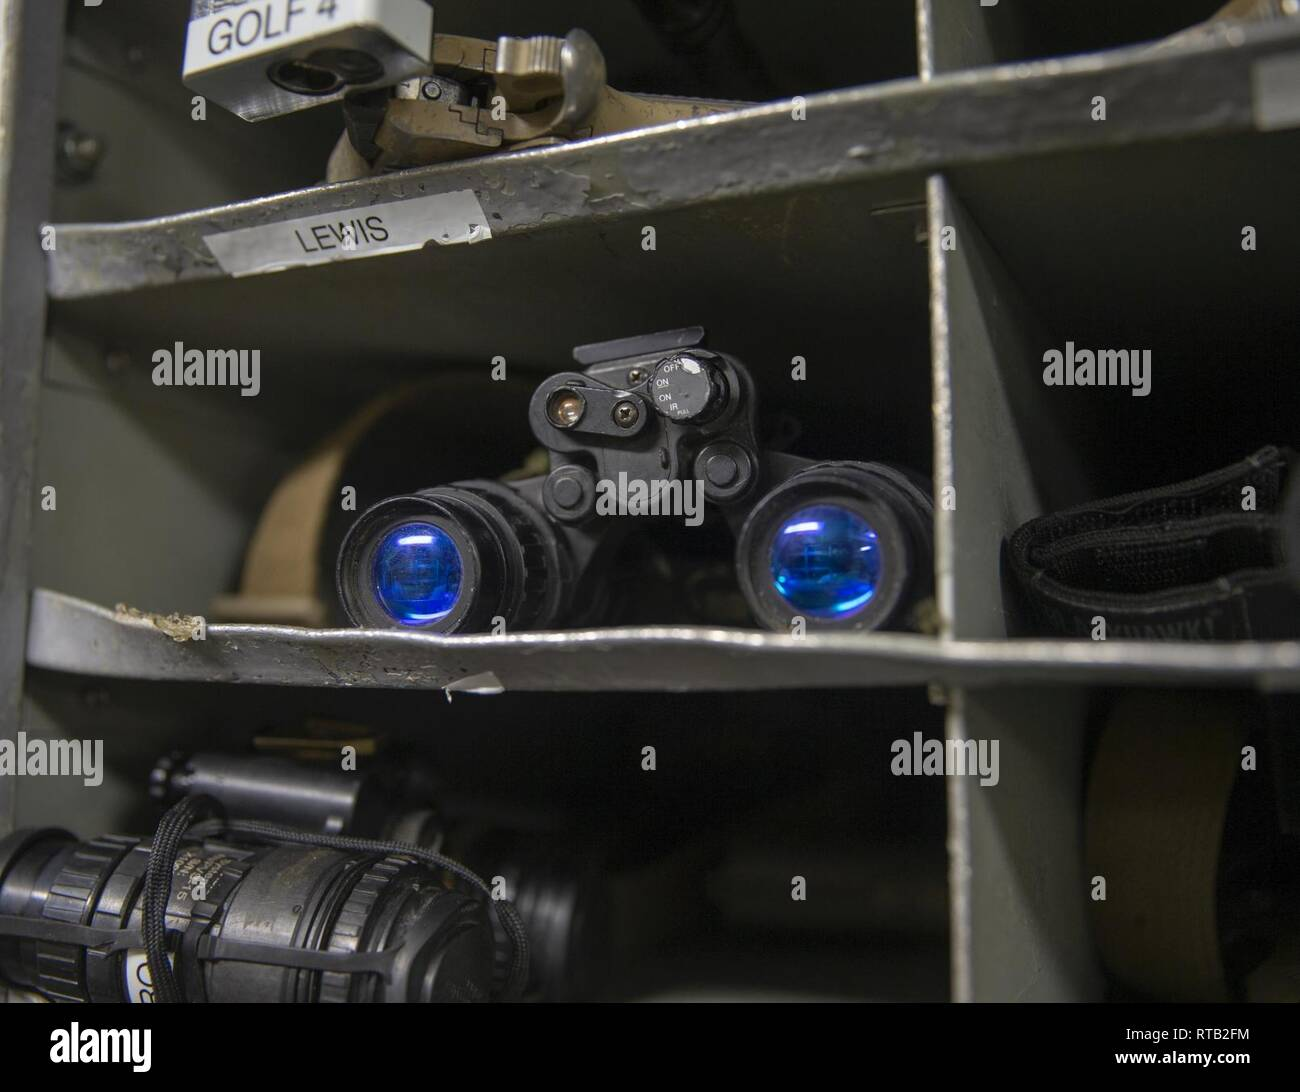 A Marine's PVS-31 night vision optics are secured in the armory of the Whidbey Island-class dock landing ship USS Fort McHenry (LSD 43), Feb. 6, 2019. The McHenry's armory stores service member's weapons and equipment. Marines and Sailors with the 22nd MEU and Kearsarge Amphibious Ready Group are currently deployed to the U.S. 5th Fleet area of operations in support of naval operations to ensure maritime stability and security in the Central Region, connecting the Mediterranean and the Pacific through the western Indian Ocean and three strategic choke points. Stock Photo